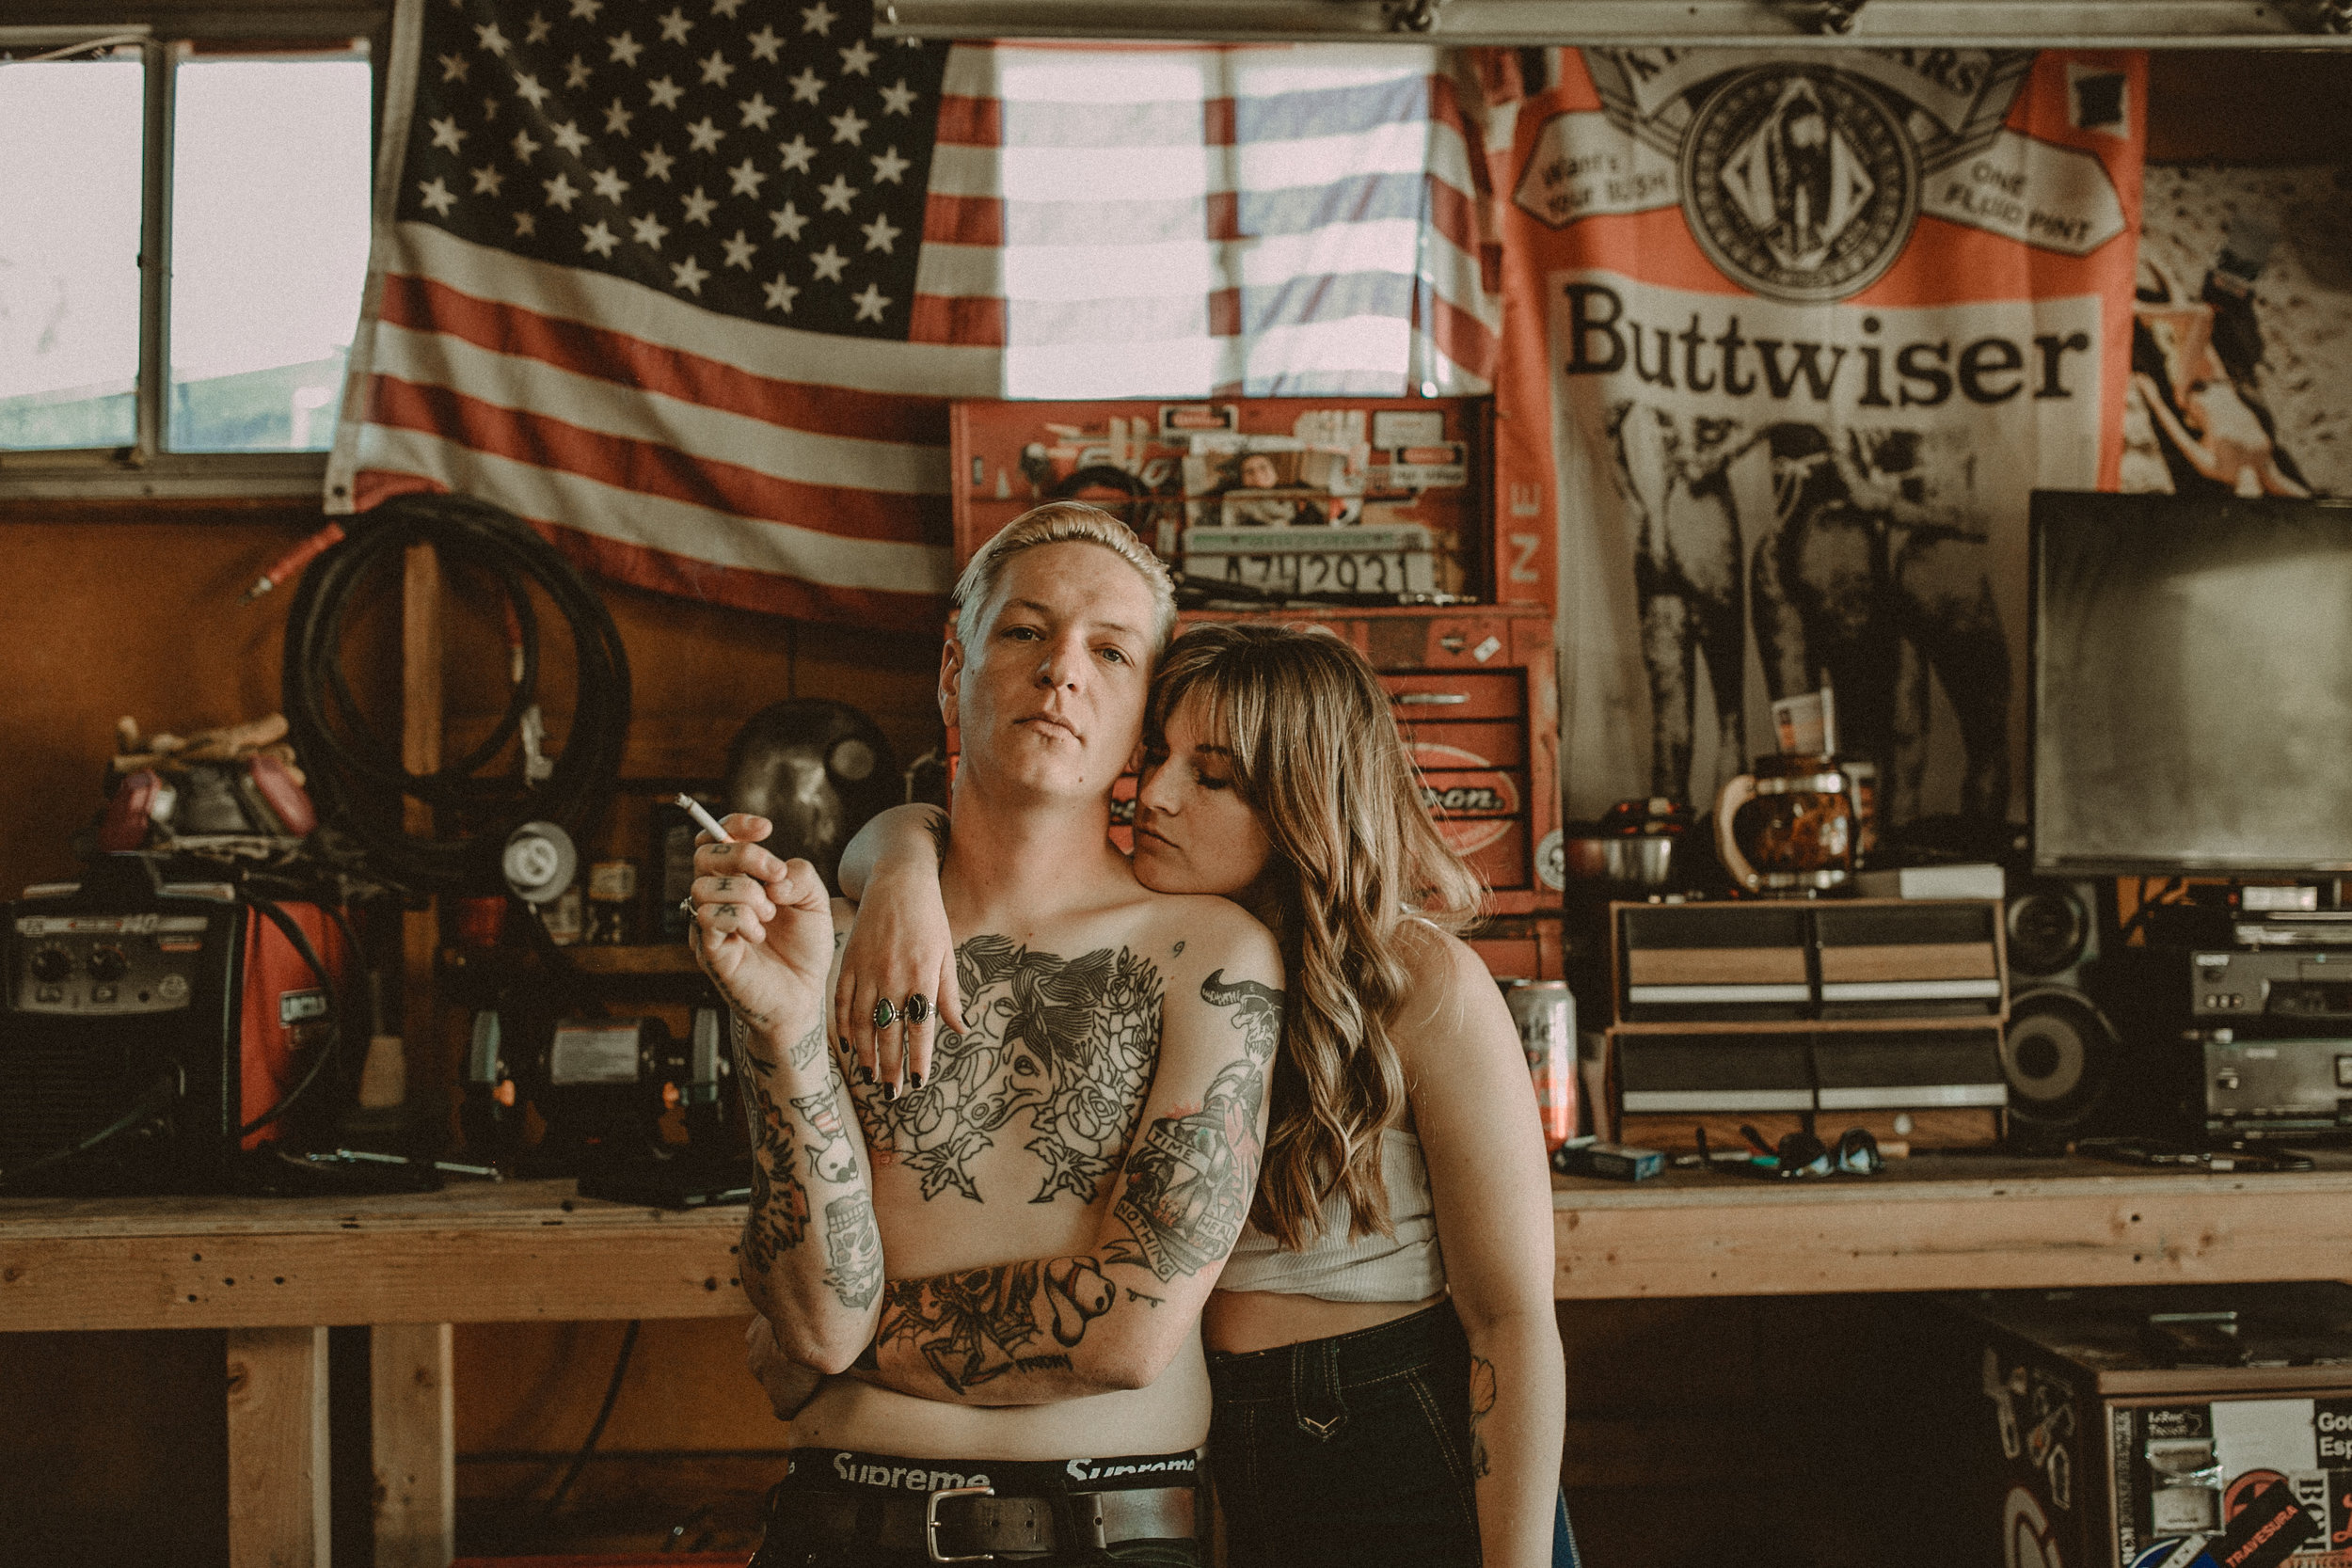 Alyssa + Damien's retro garage session - People will say it's a styled session, but I just have cool friends. Their Tucson garage is a place I always told them would be perfect to capture because it's where they spend most of their time. Damien works on motorcycles and Alyssa is his wing woman. I love their americana vibes. Xoxo. Gossip girl.